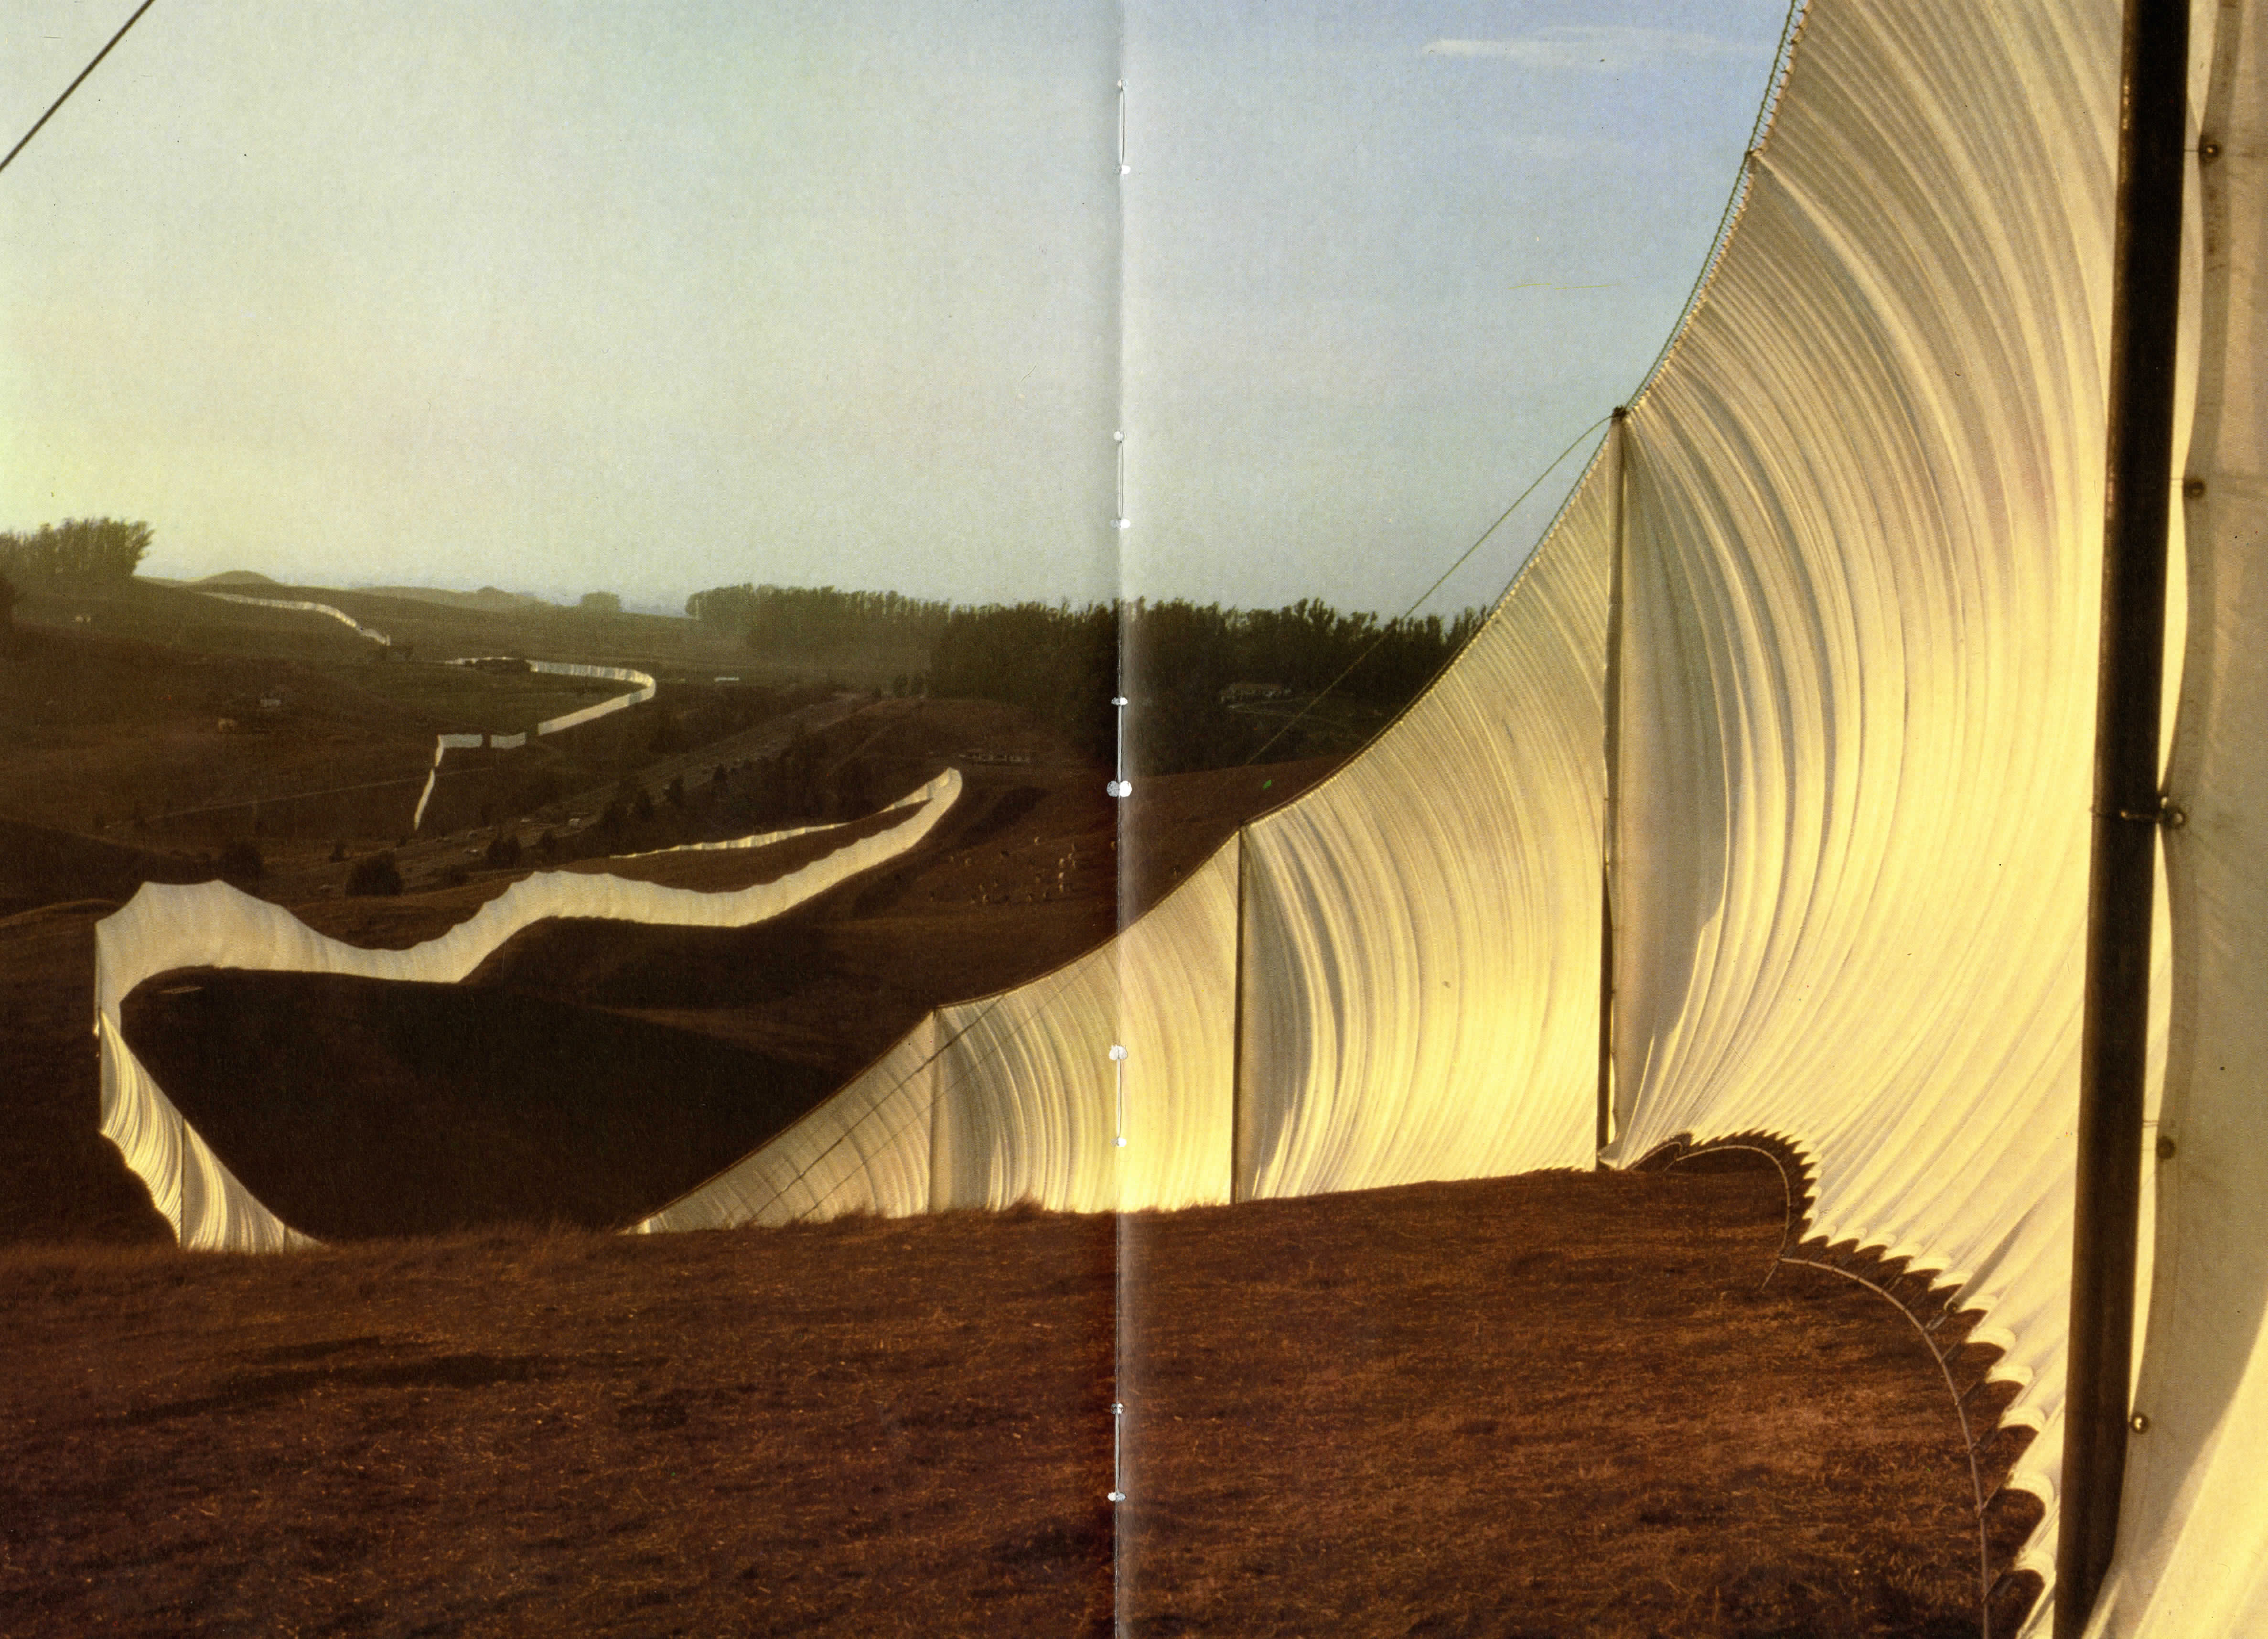 The Library, Christo, Rizzoli New York, Books, Marina Vaizey, Published 1990, Test Pressing